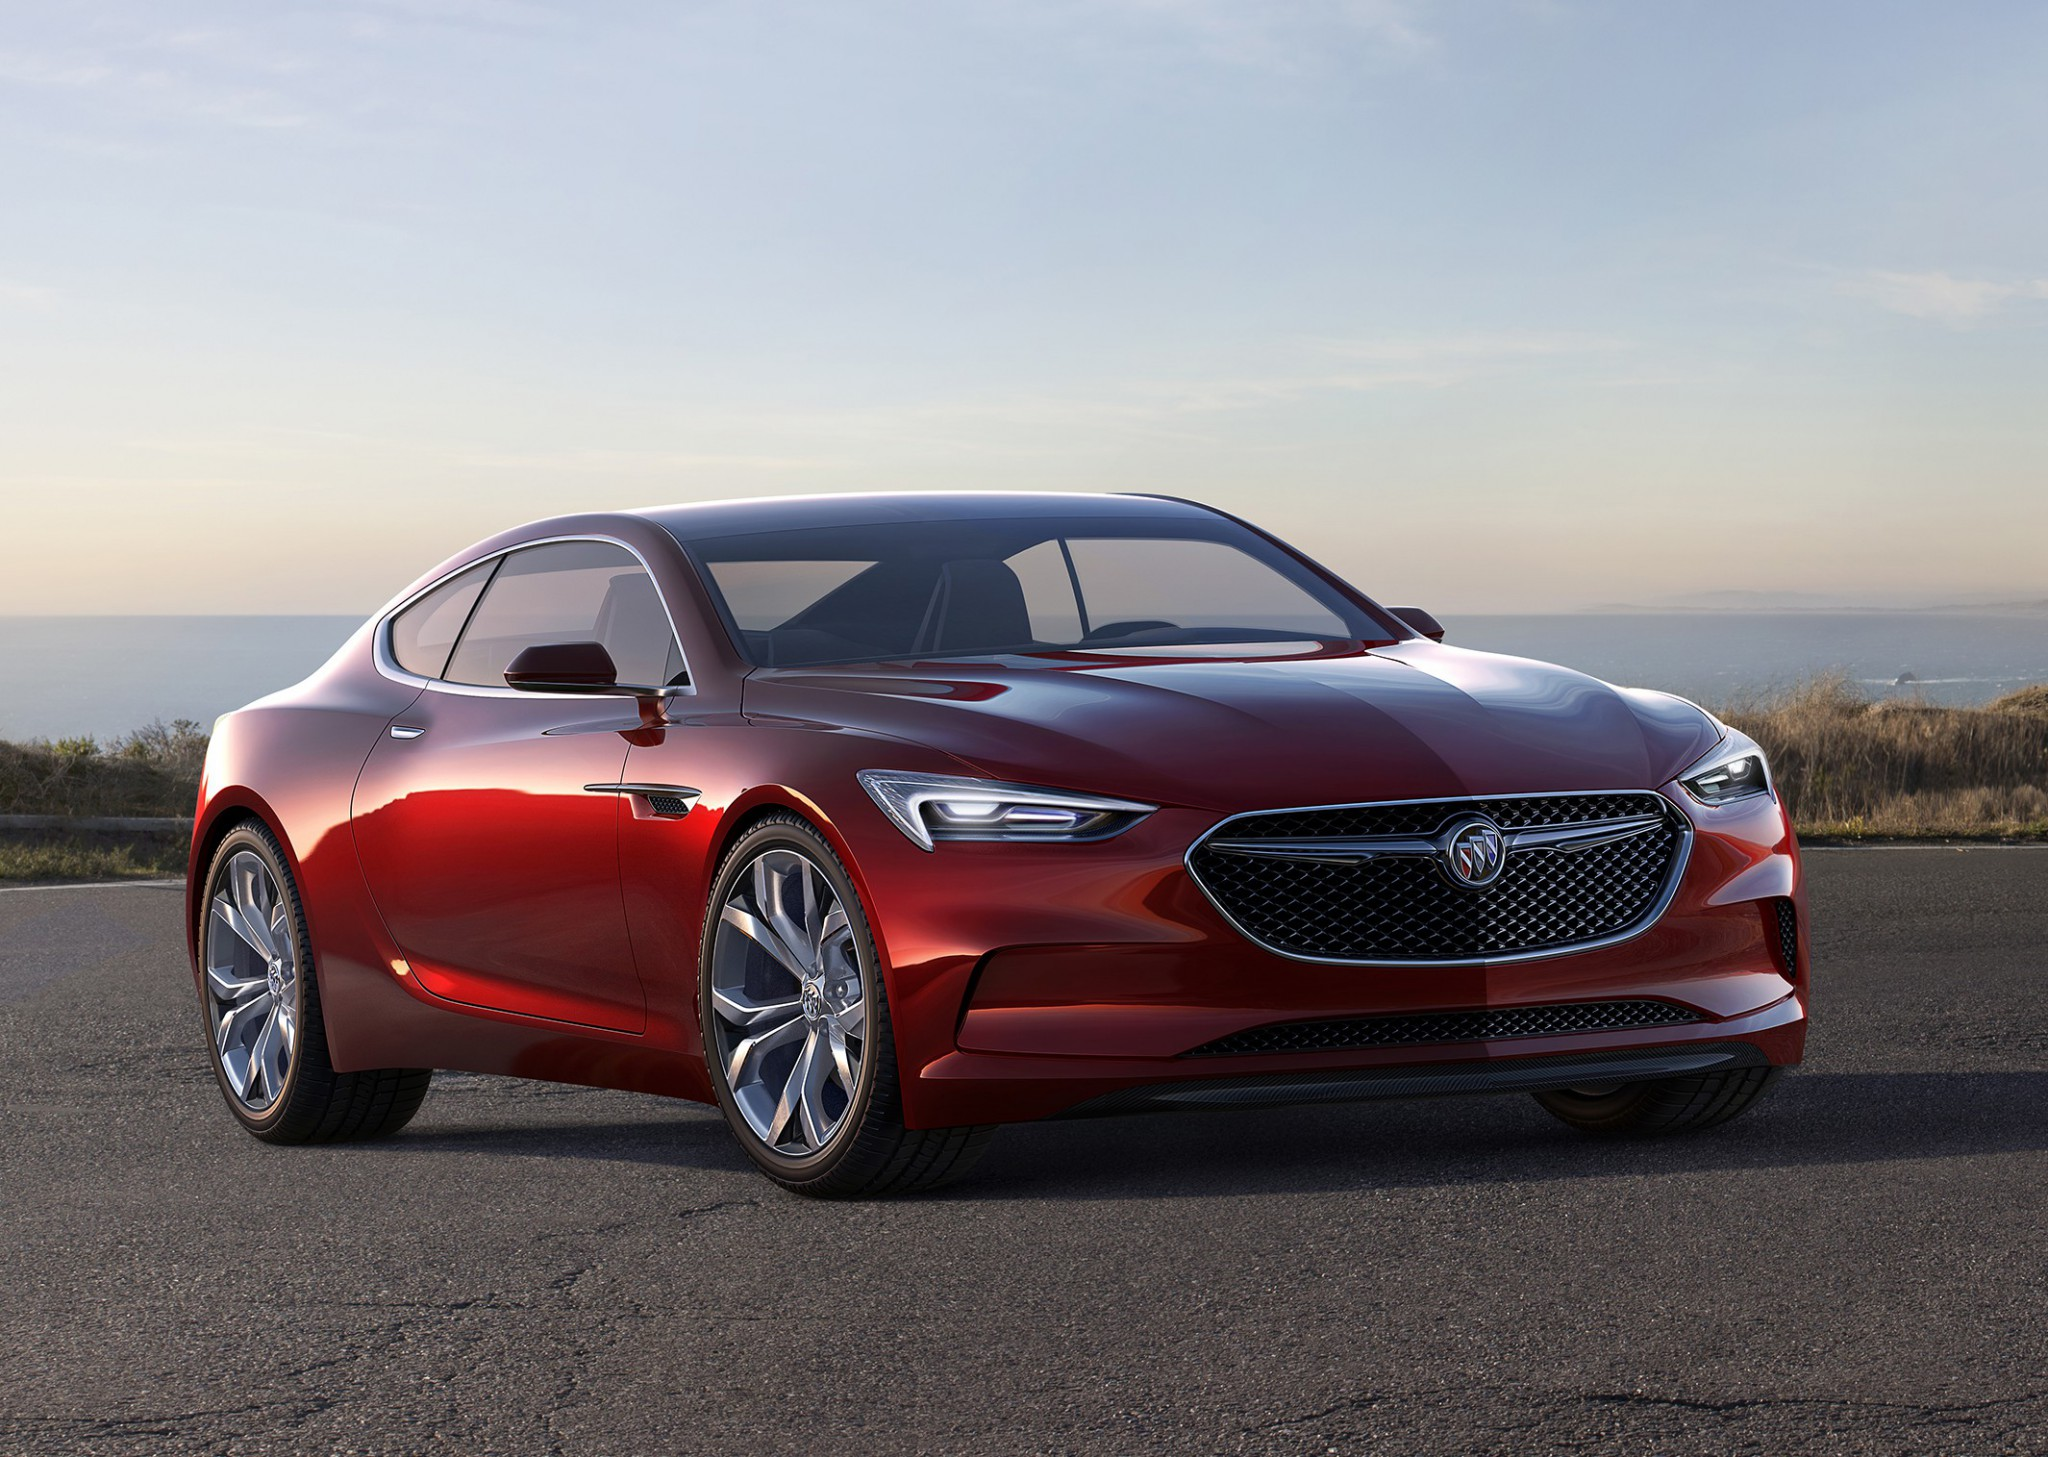 Buick Avista Concept front view shown in lacquer jewel red finis